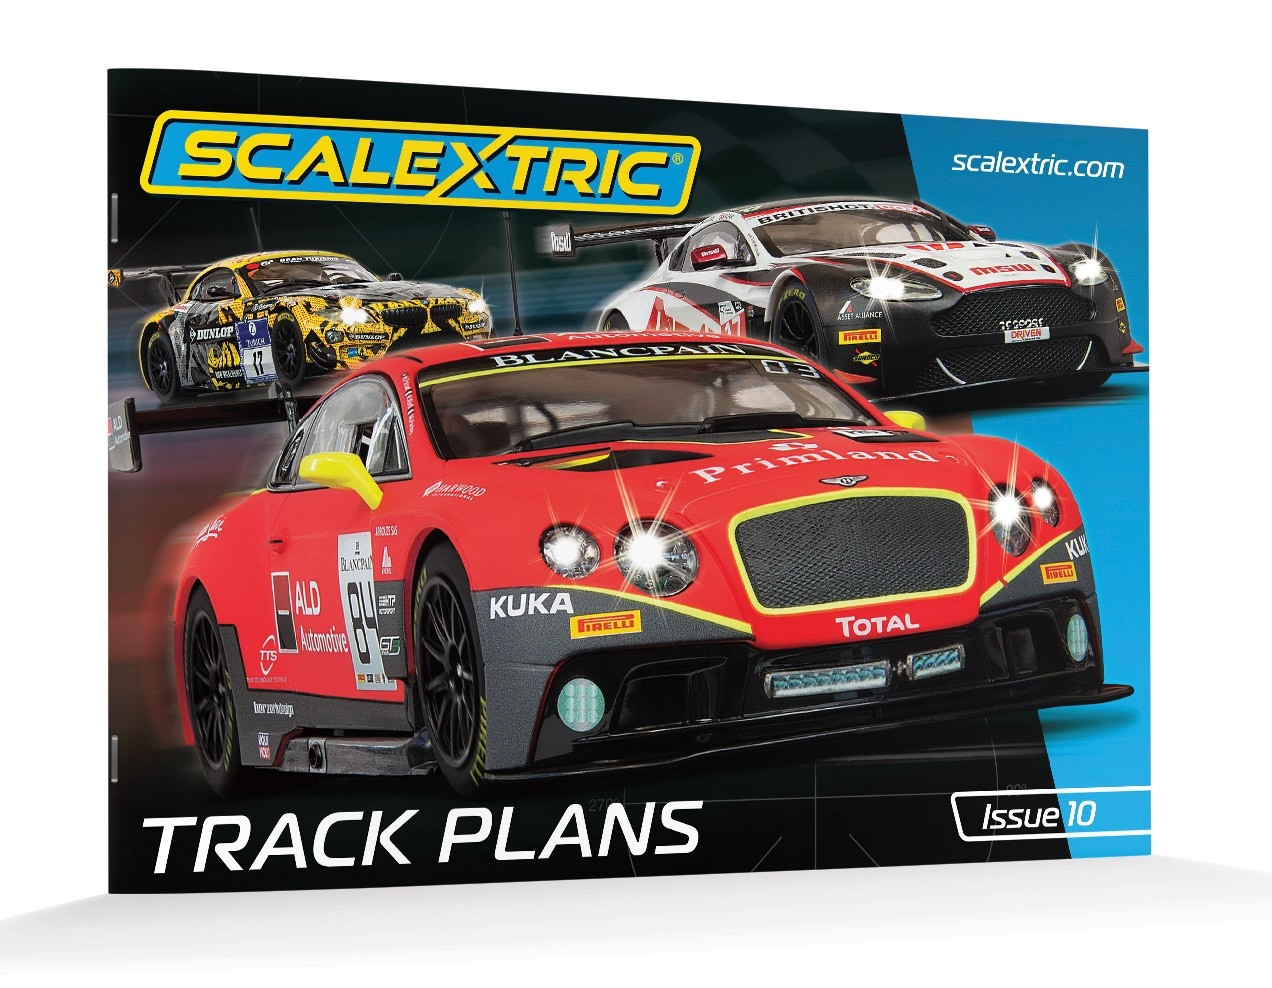 C8334 Scalextric Track Plans, Edition 10